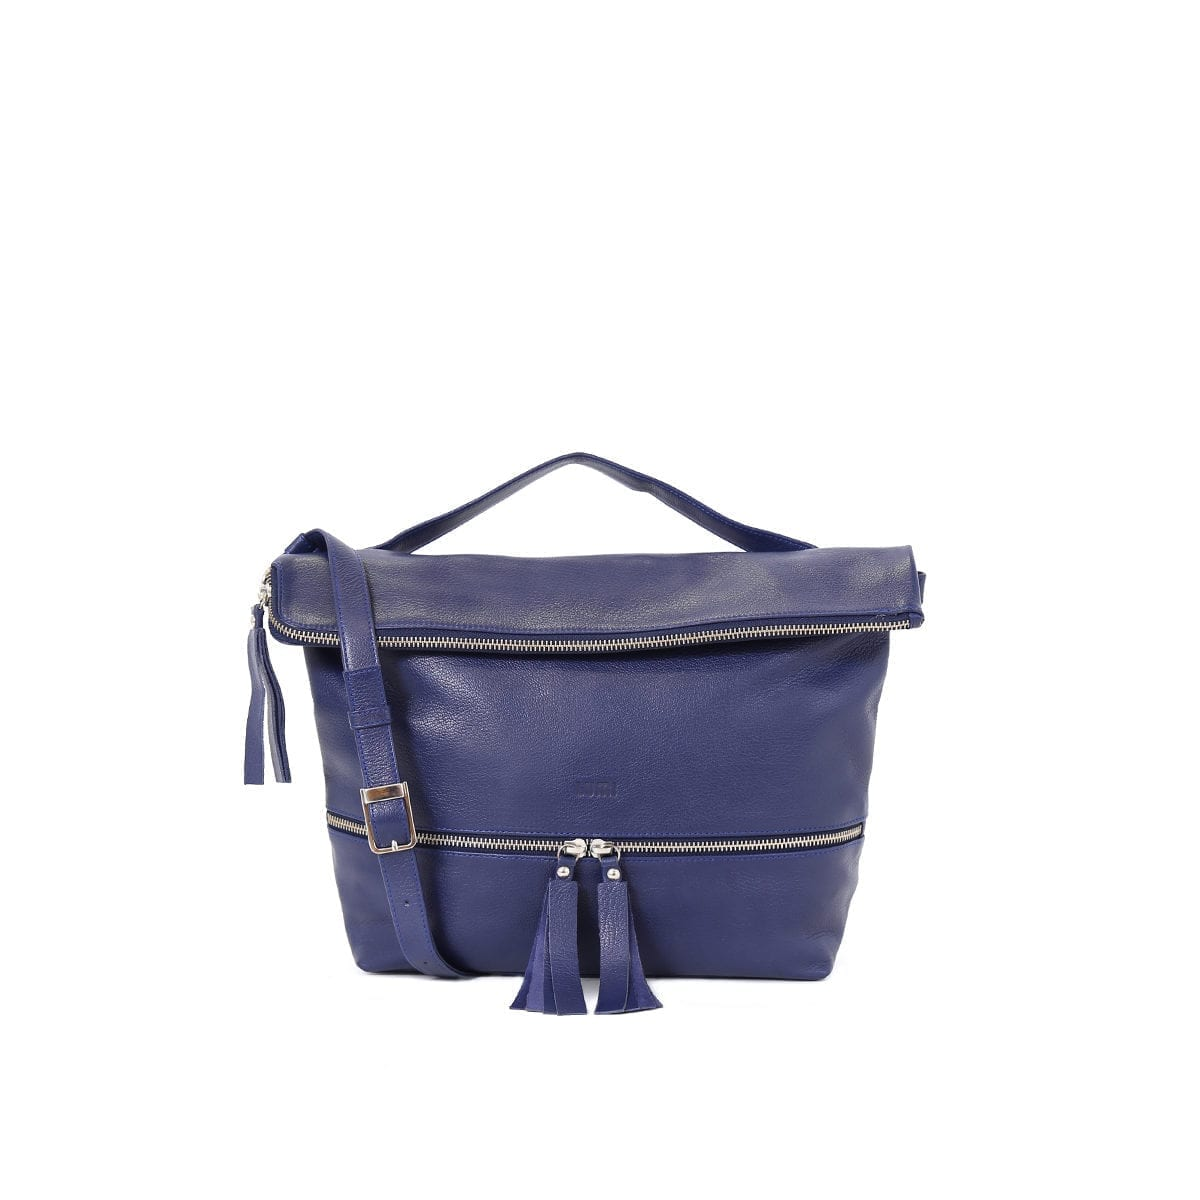 Lyydia Shoulder Bag in ocean blue.